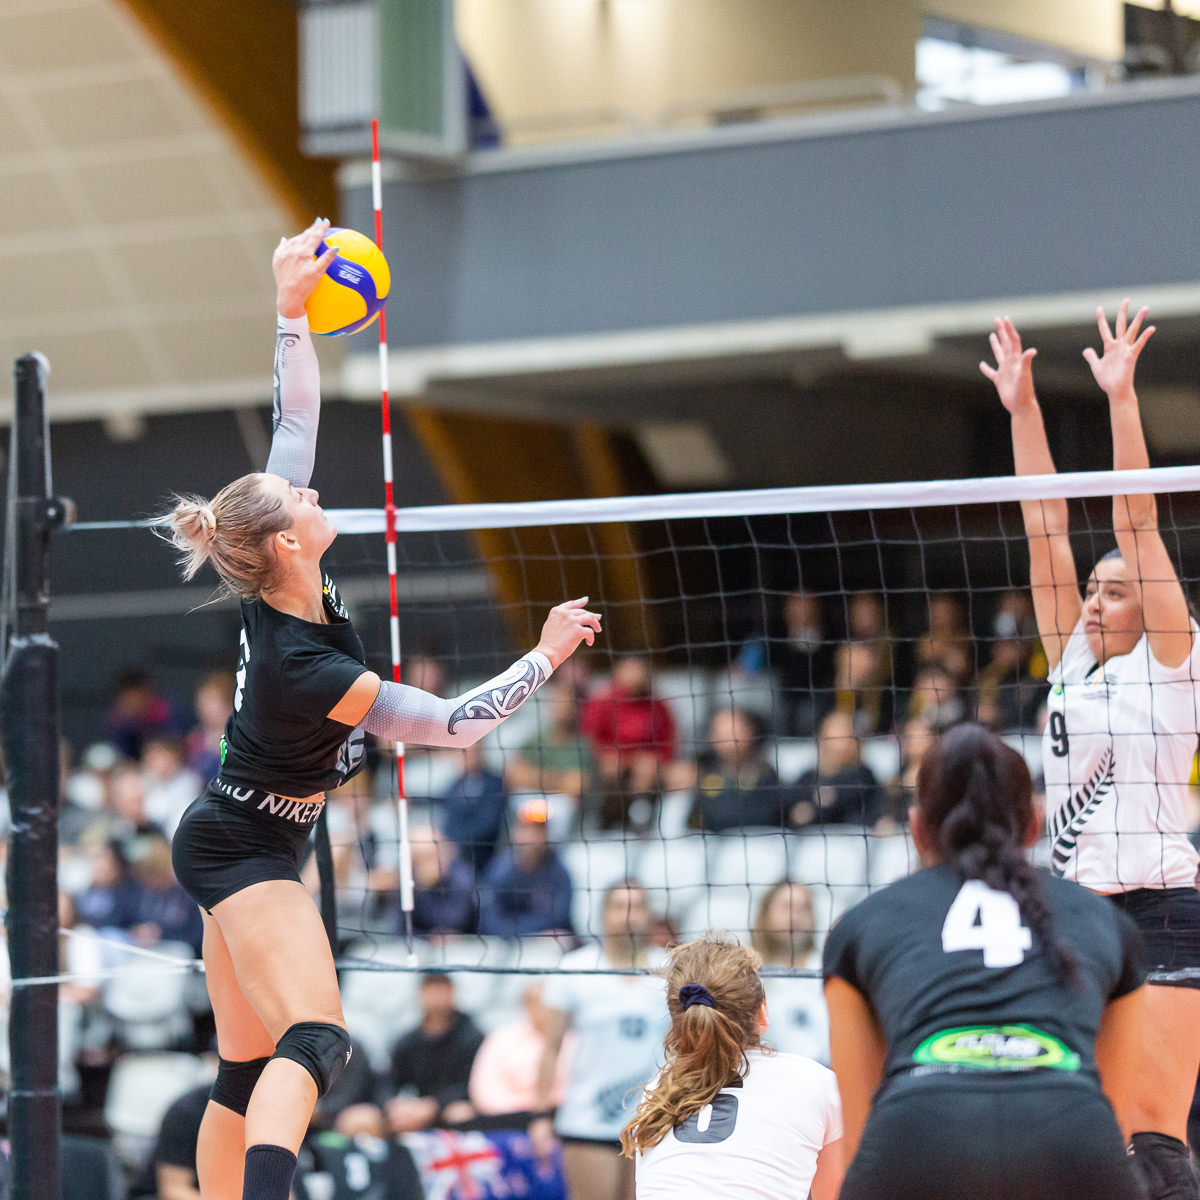 CHANGES TO VOLLEYBALL NZ YOUTH PROGRAMME AIM TO CAST WIDER NET